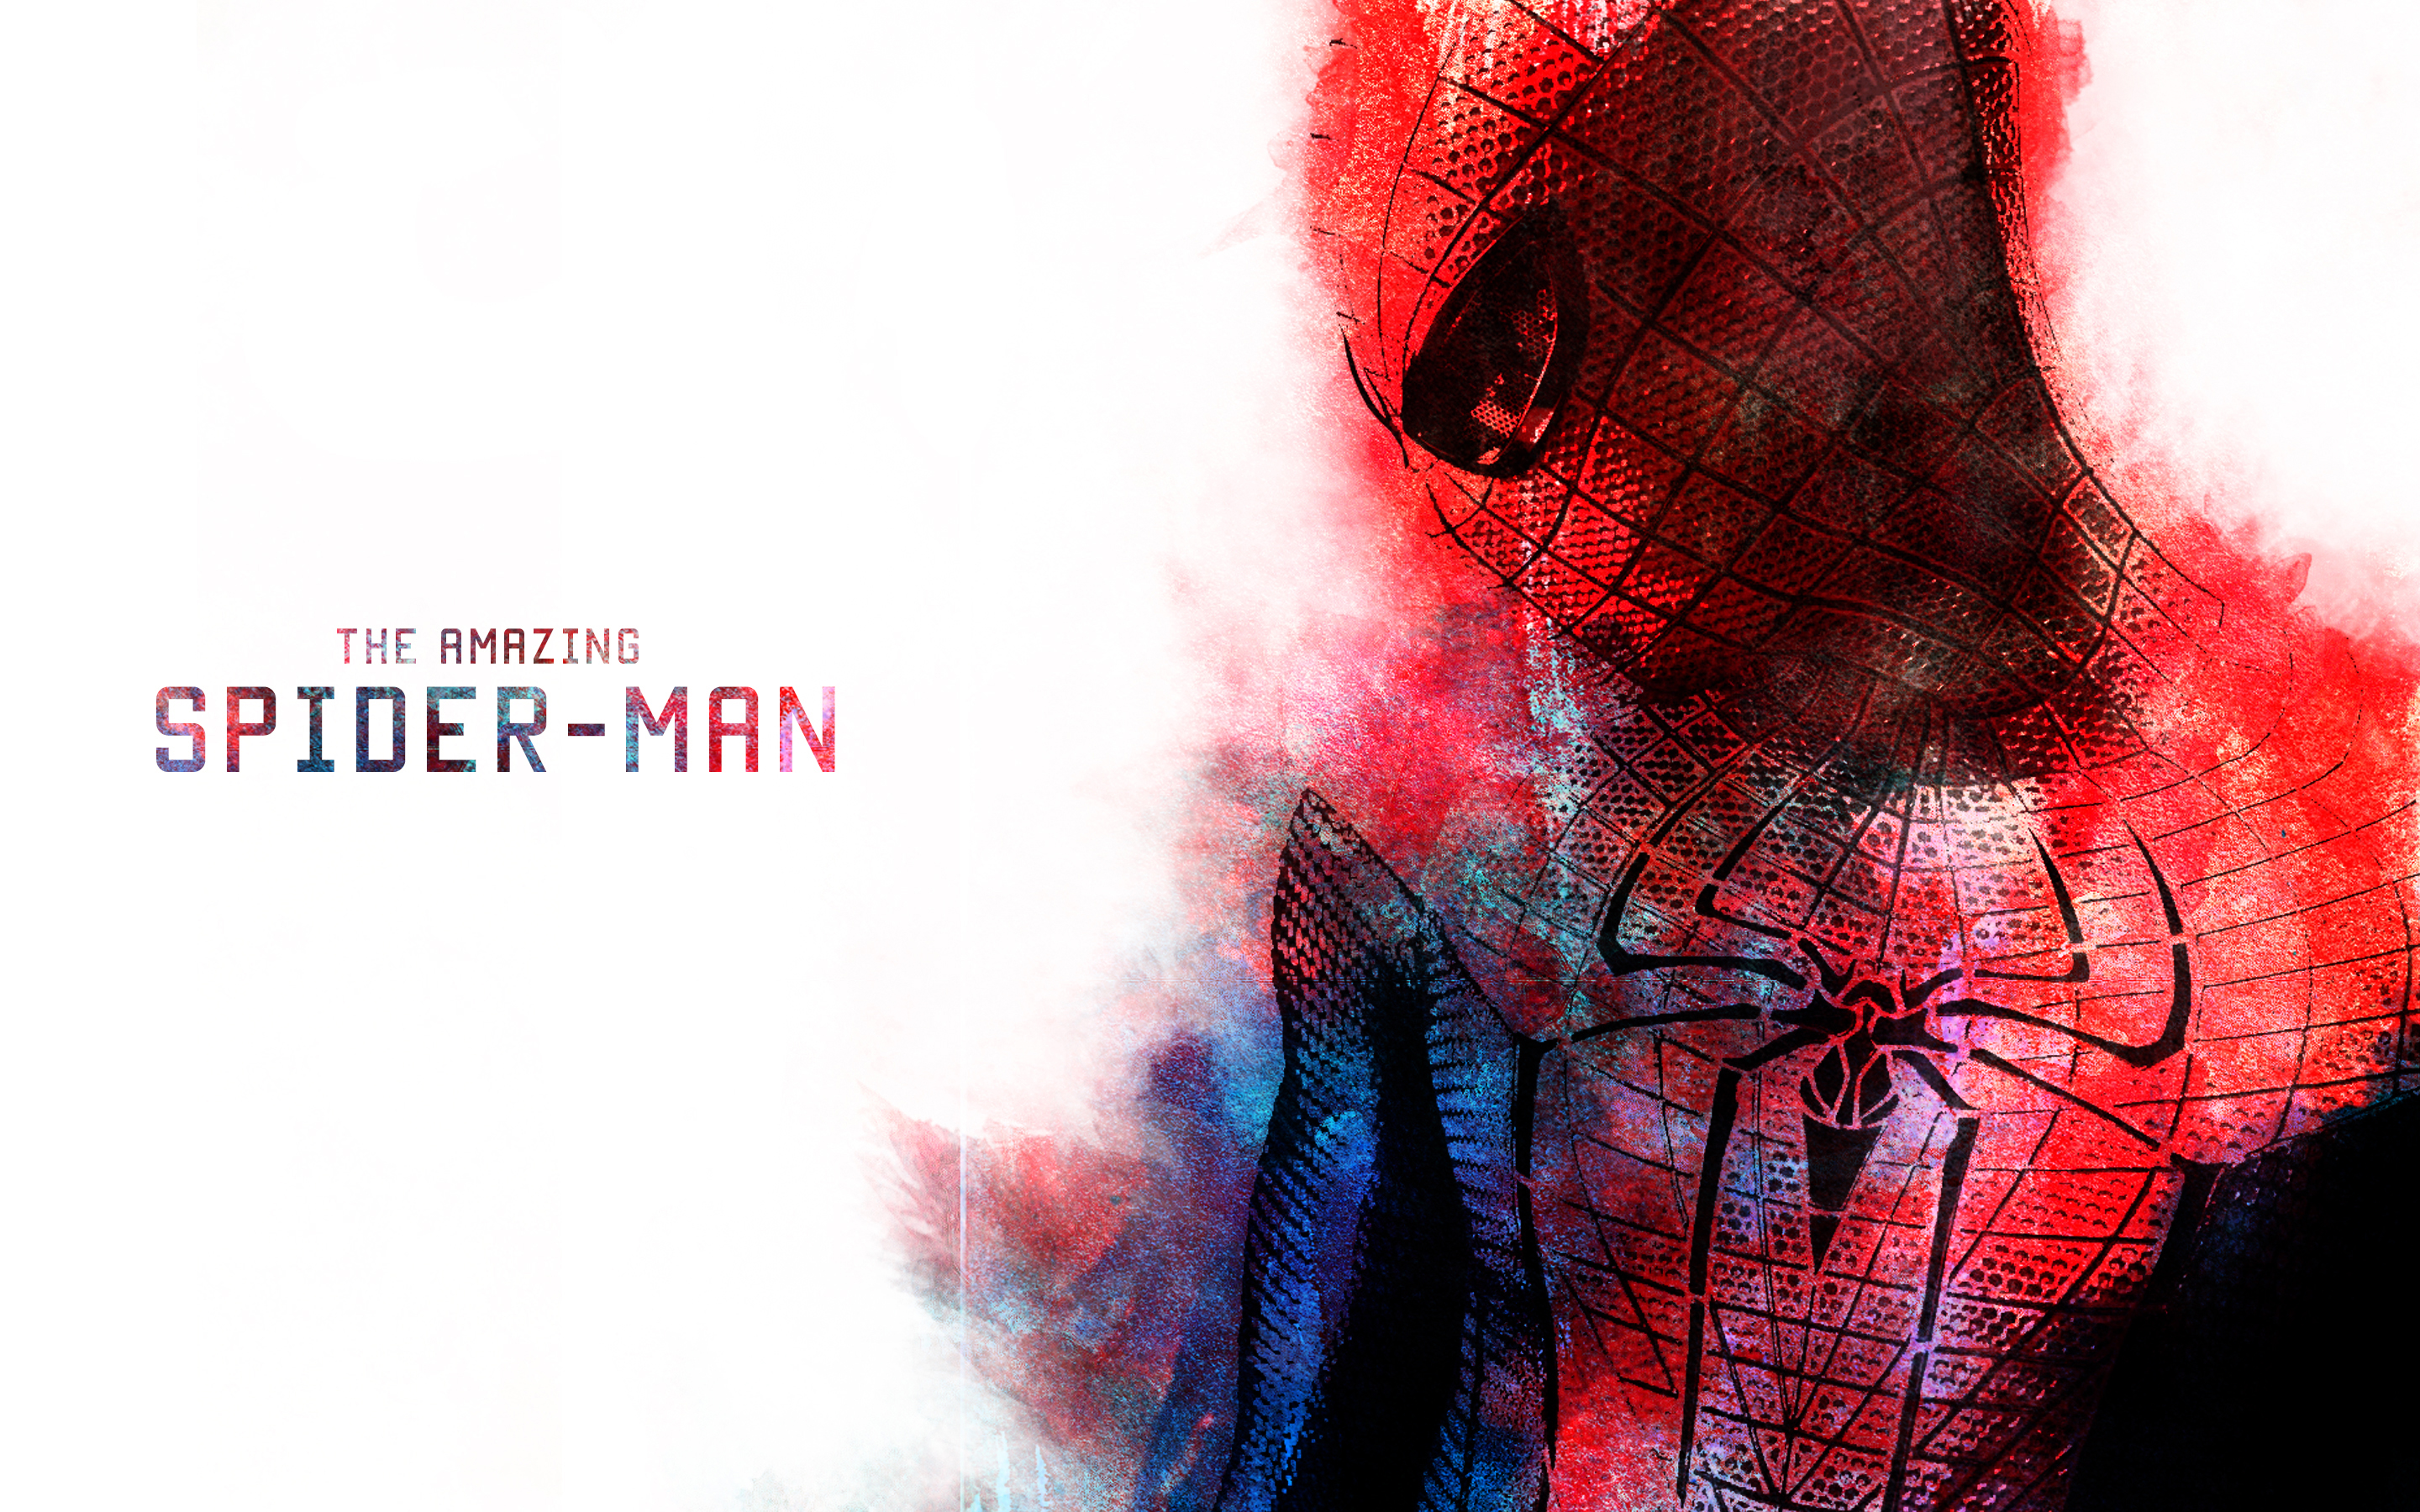 amazing spiderman hd wallpaper - photo #35